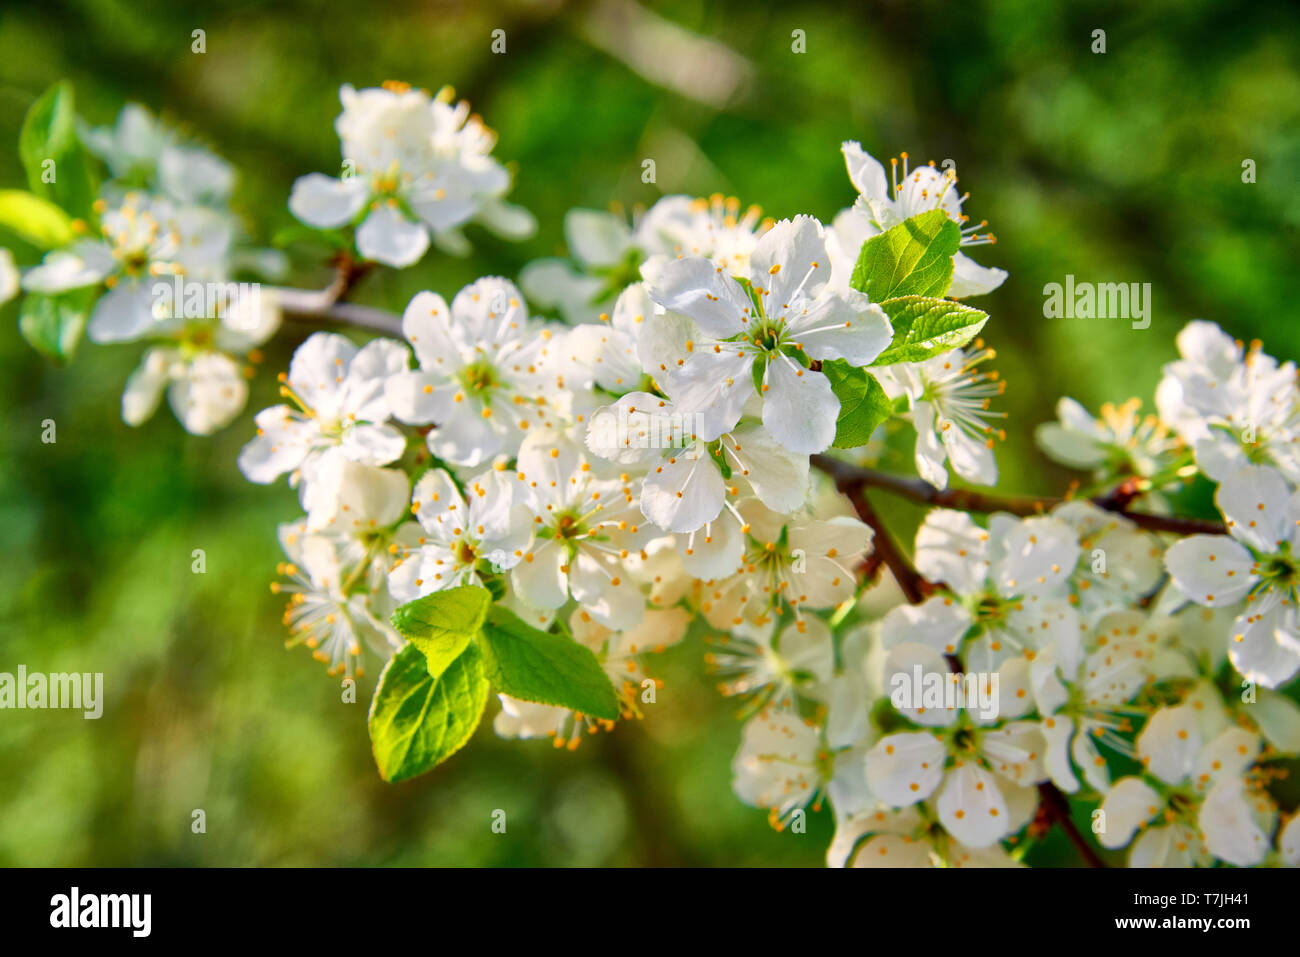 The branches of a blossoming tree. Cherry tree in white flowers. Blurring background. - Stock Image